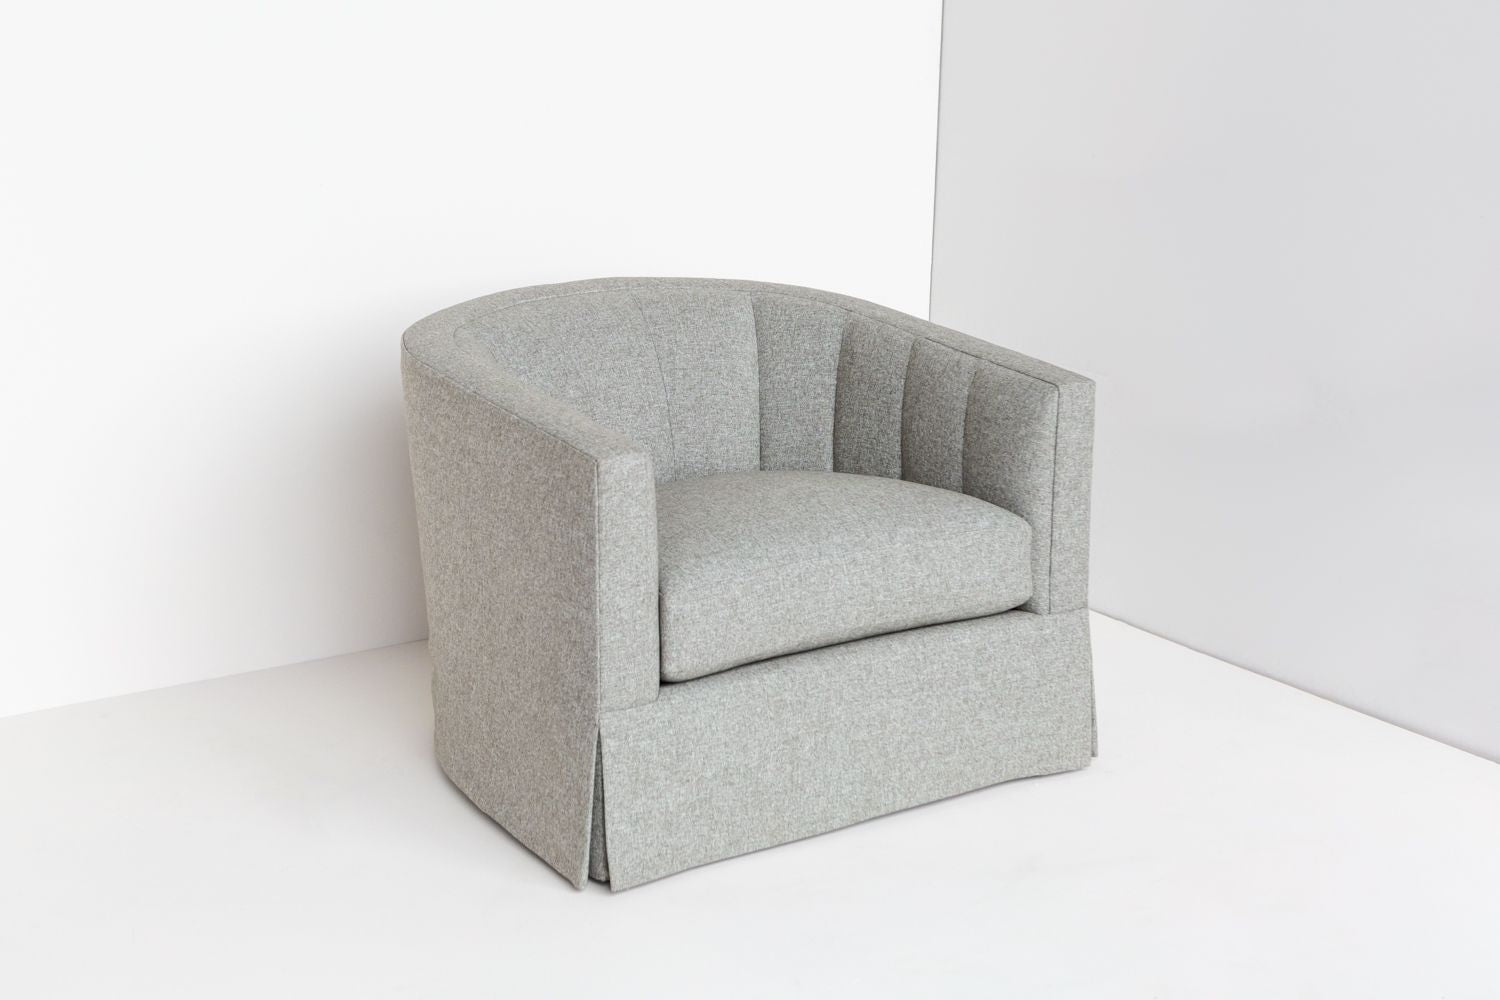 Side view profile product shot of ffabb home Coco Swivel chair